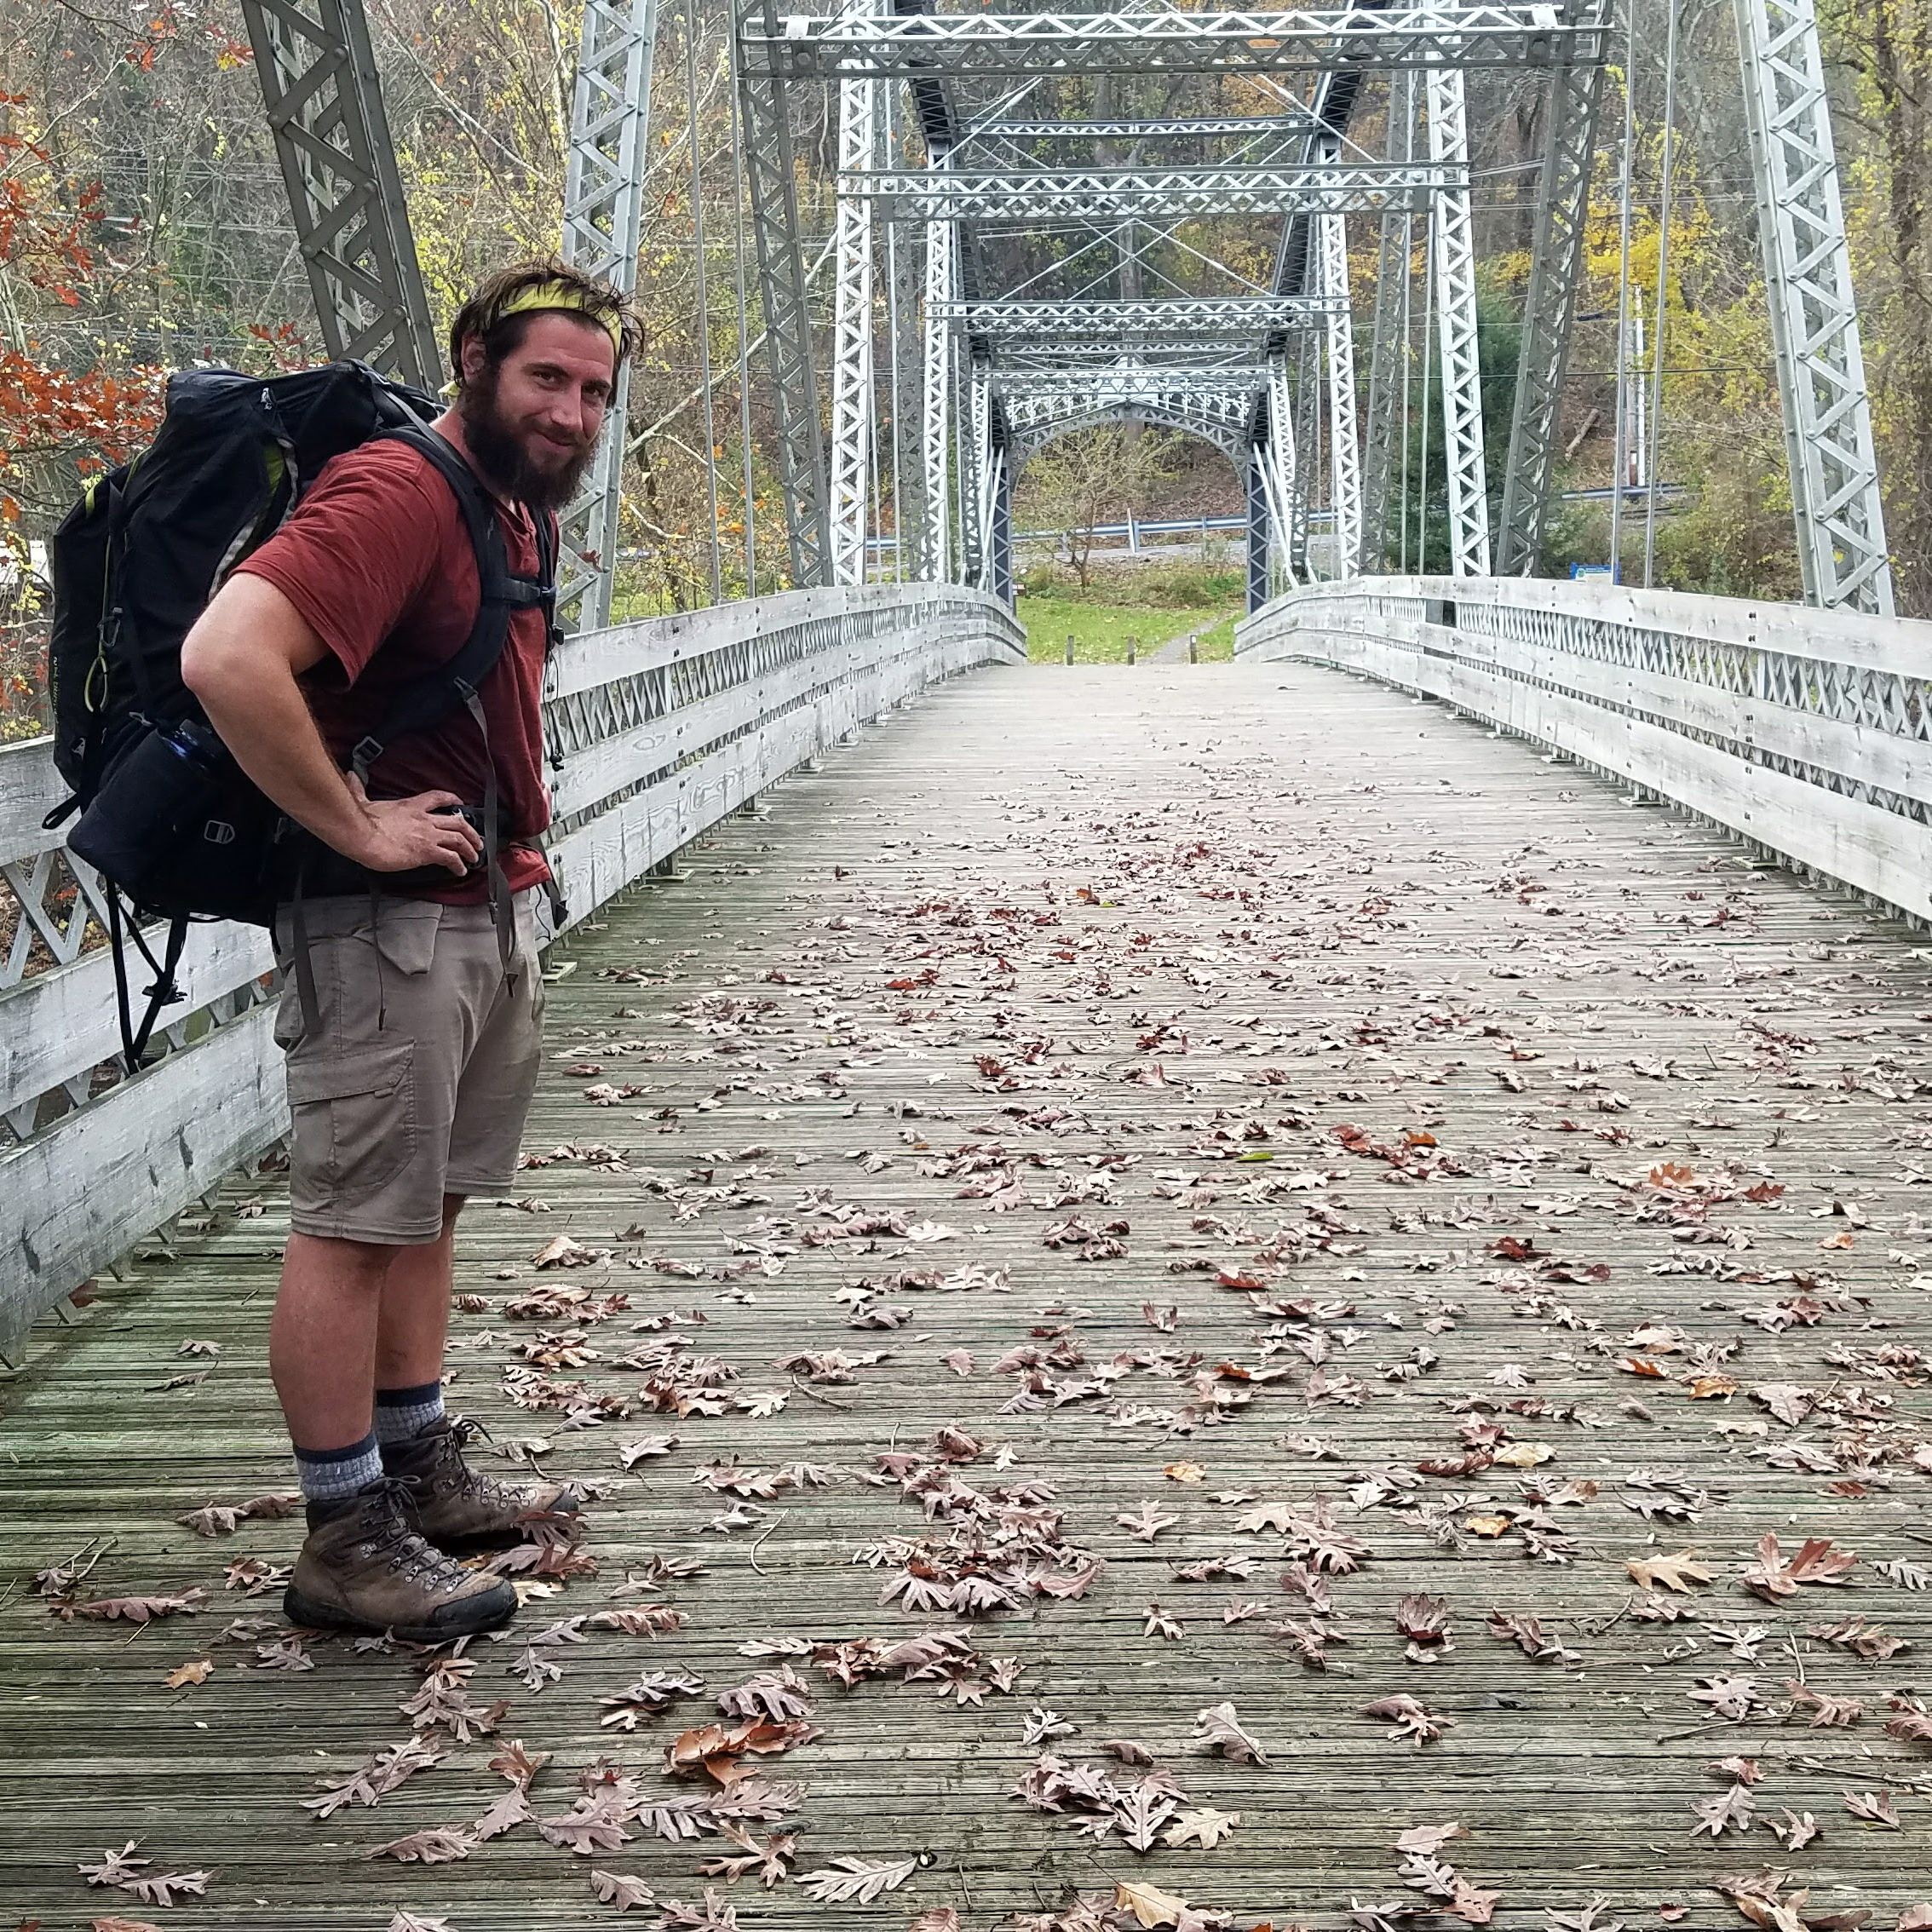 IG_Squatch_Bridge.jpg